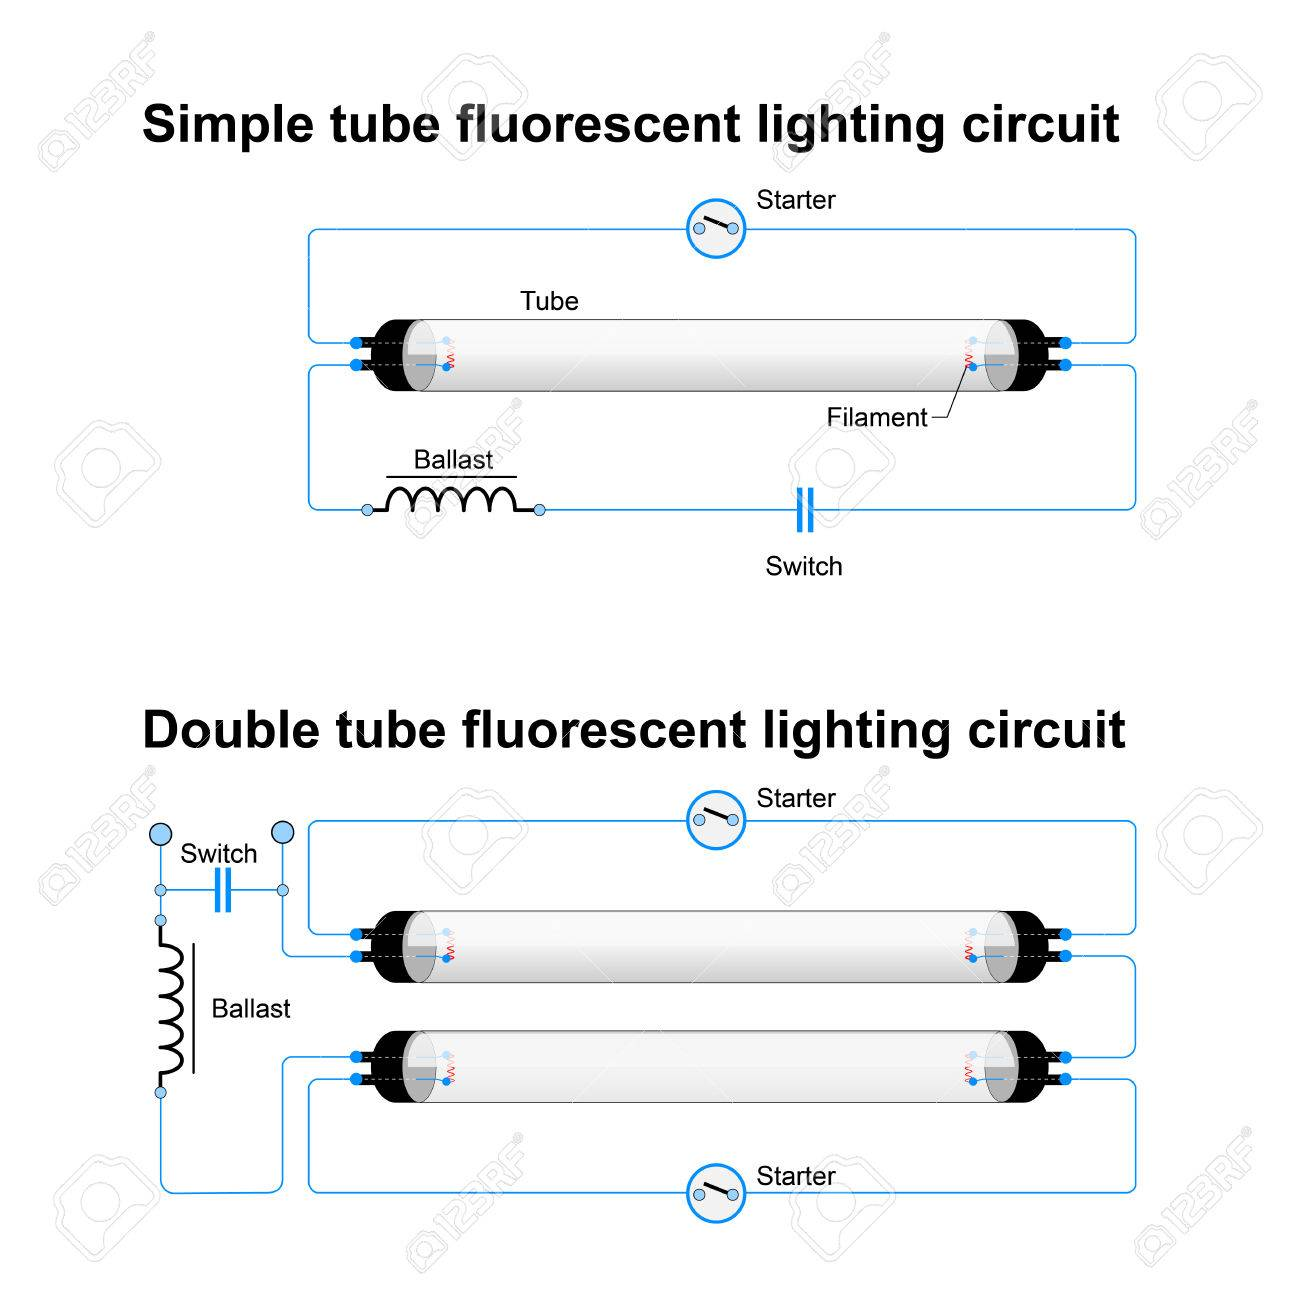 Anchor Navigation Light Wiring Diagram Trusted Multi Switch Multiswitch Diy Enthusiasts Diagrams U2022 Home